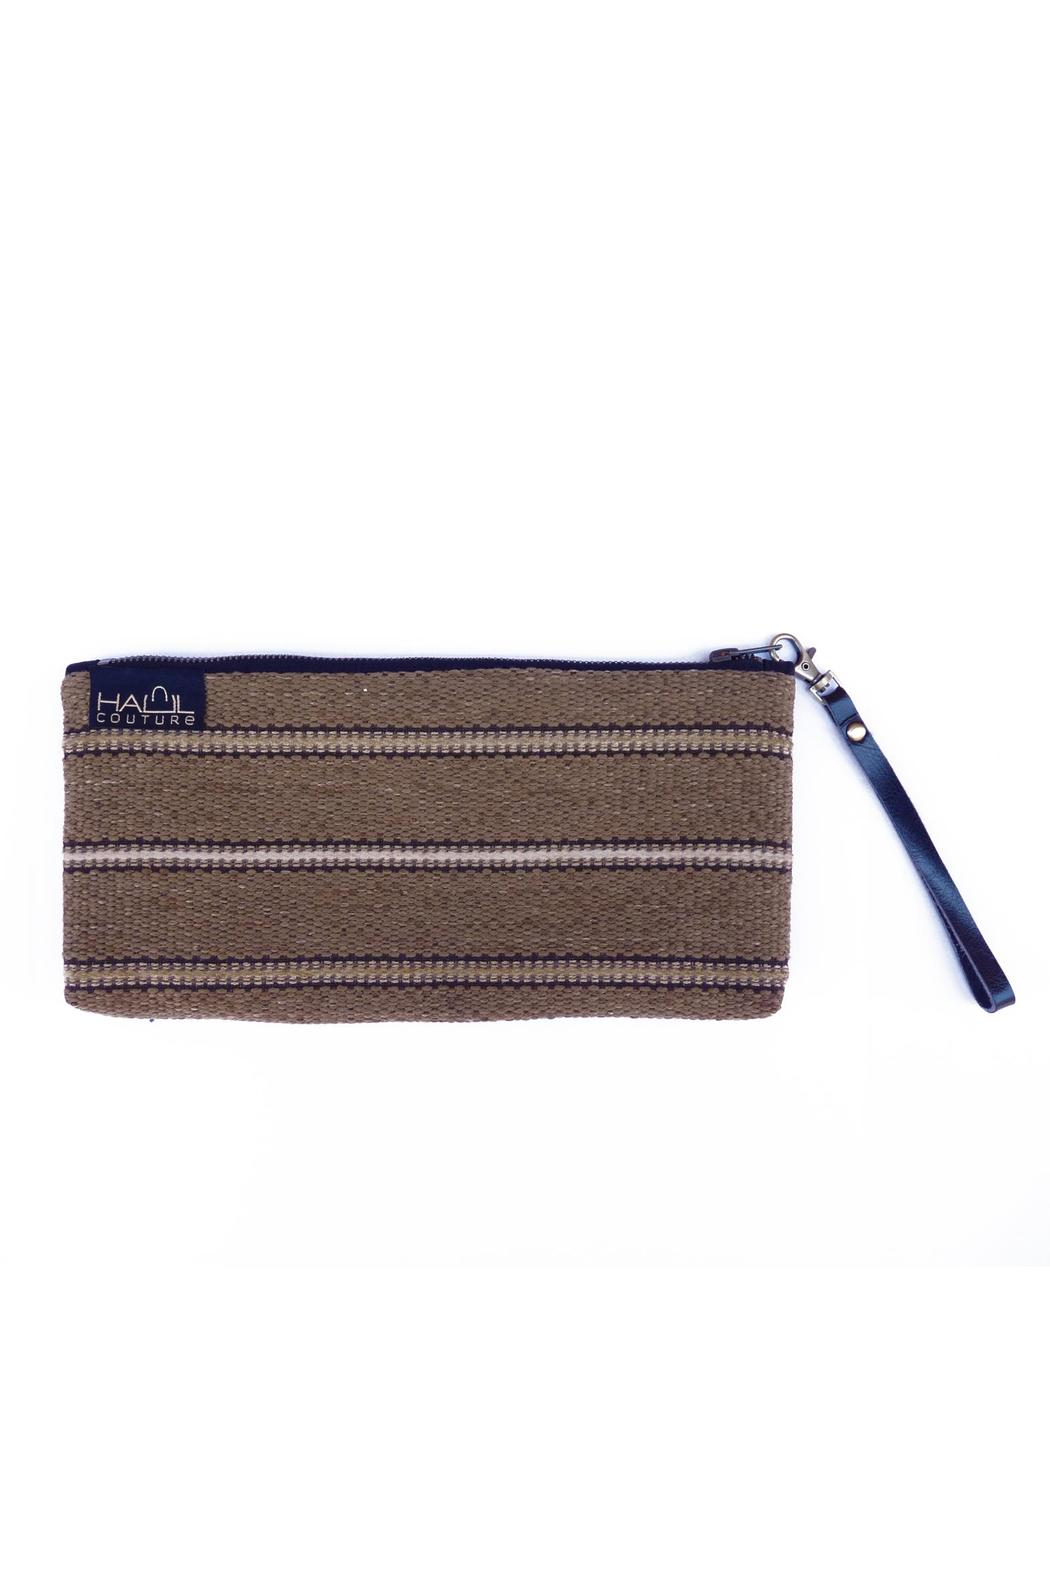 Haul Couture Wriley Clutch From Texas By Personalize It